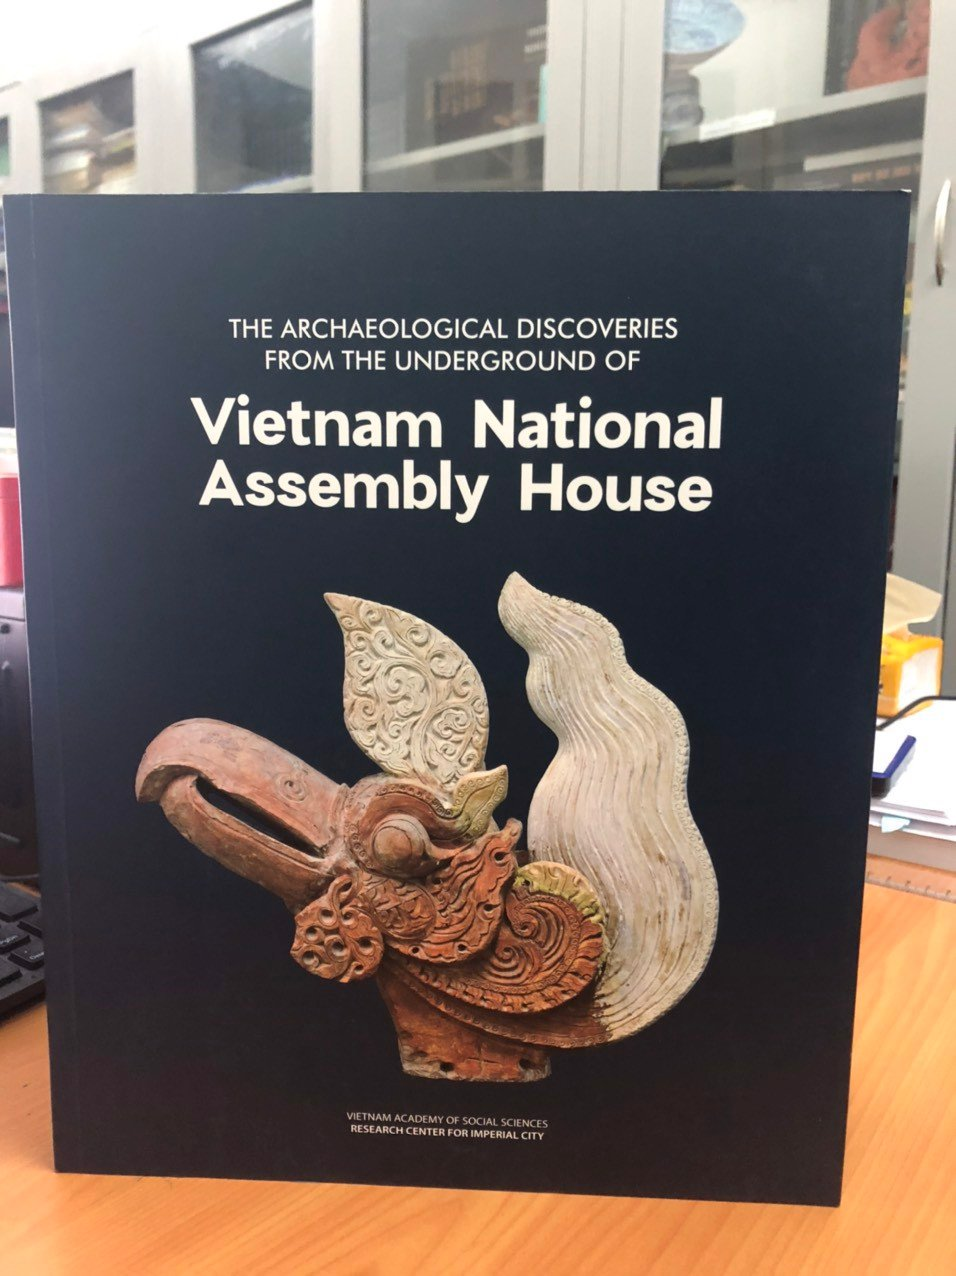 The Archaeological Discoveries From the Underground of Vietnam National Assembly House/The Archaeological Discoveries From the Underground of Vietnam National Assembly House